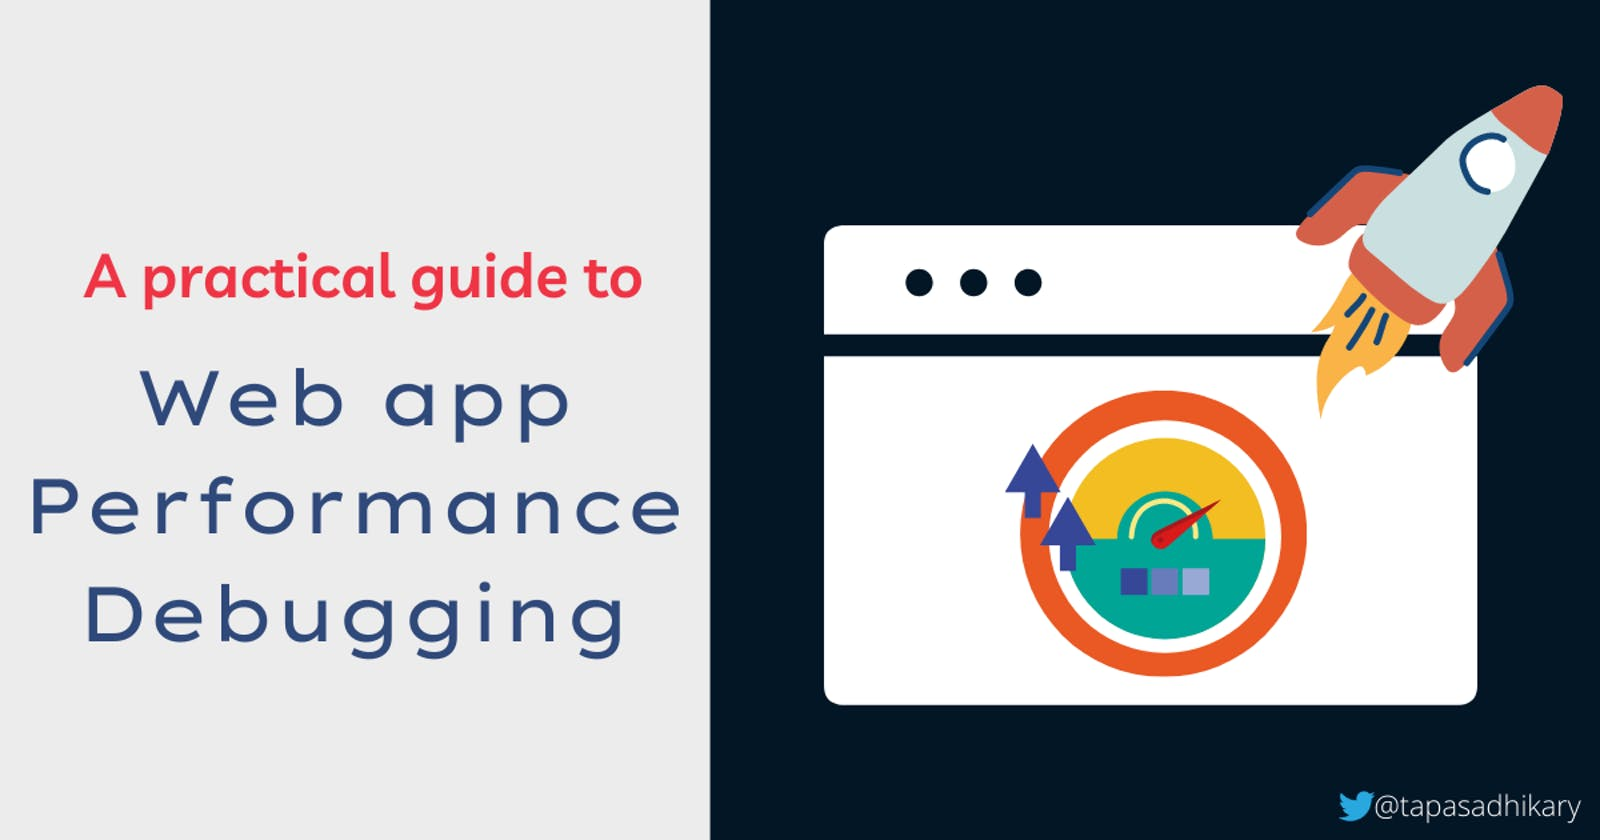 A practical guide to web app performance debugging